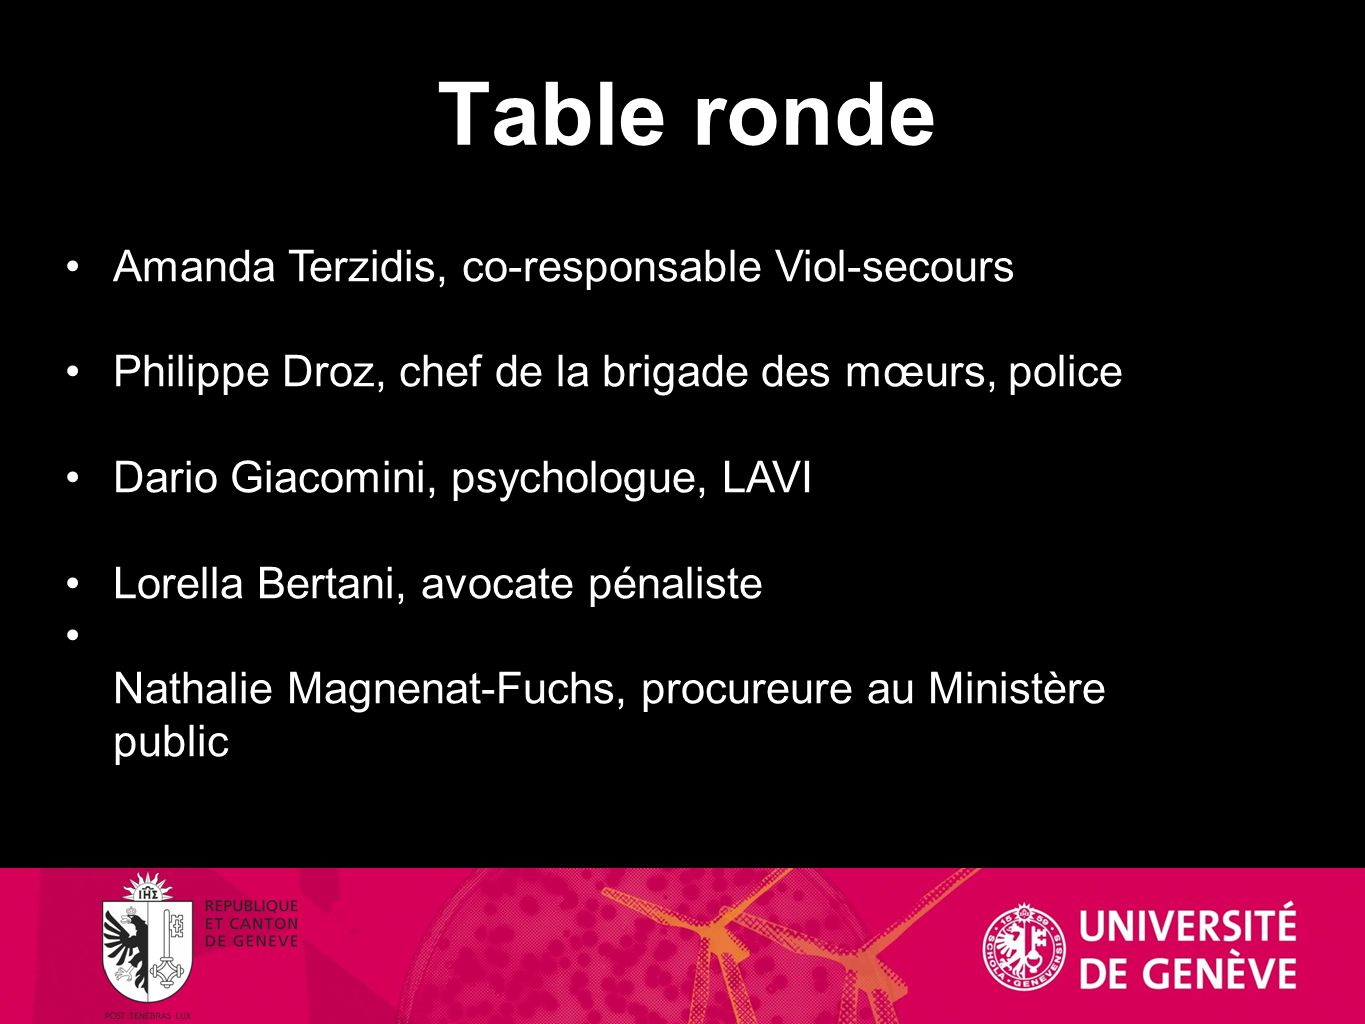 Table ronde Amanda Terzidis, co-responsable Viol-secours Philippe Droz, chef de la brigade des mœurs, police Dario Giacomini, psychologue, LAVI Lorell